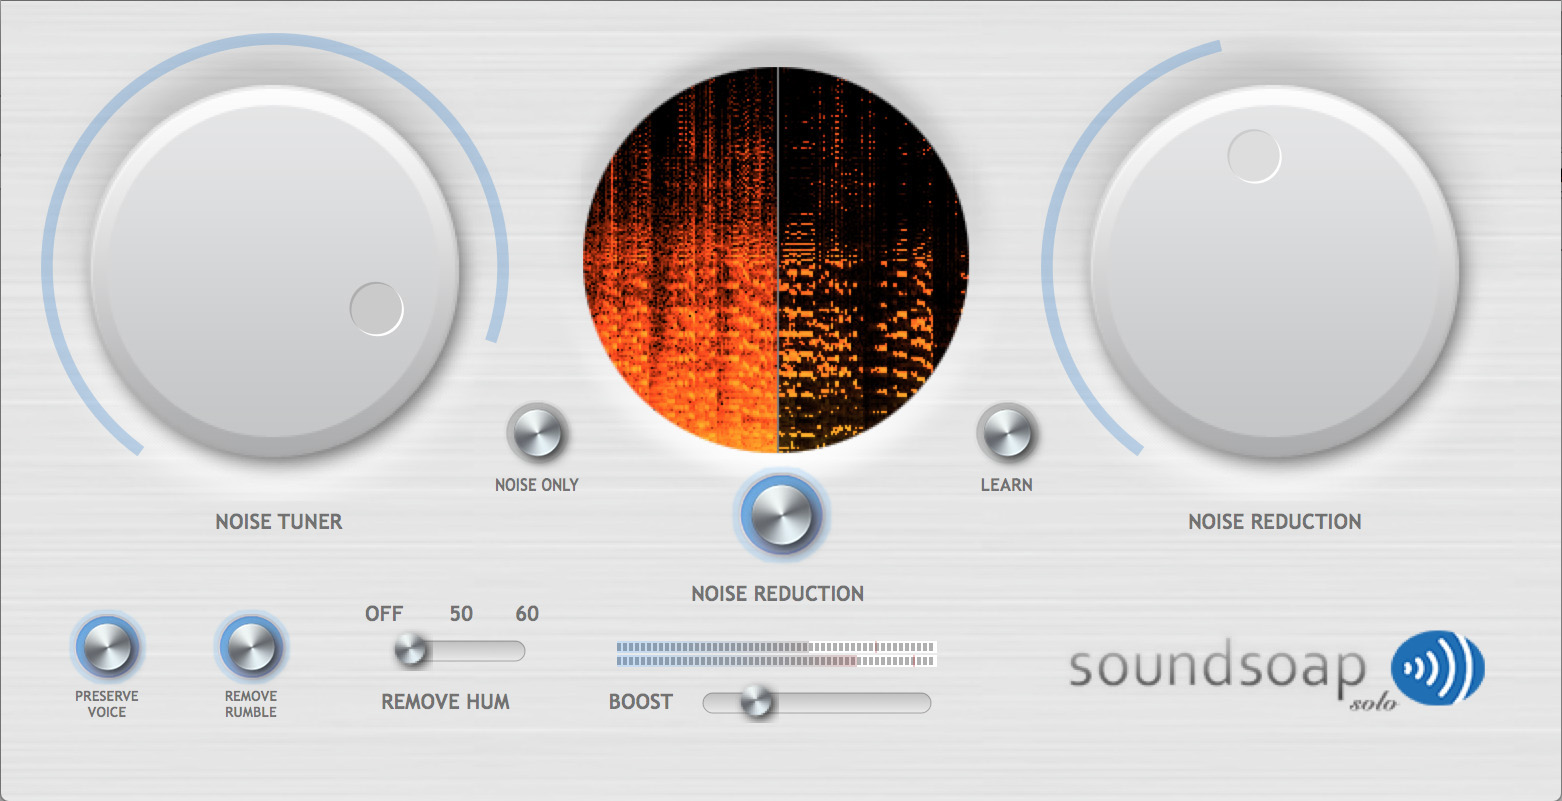 SoundSoap Solo - New Desktop Edition of Audio Cleaner Announced Image